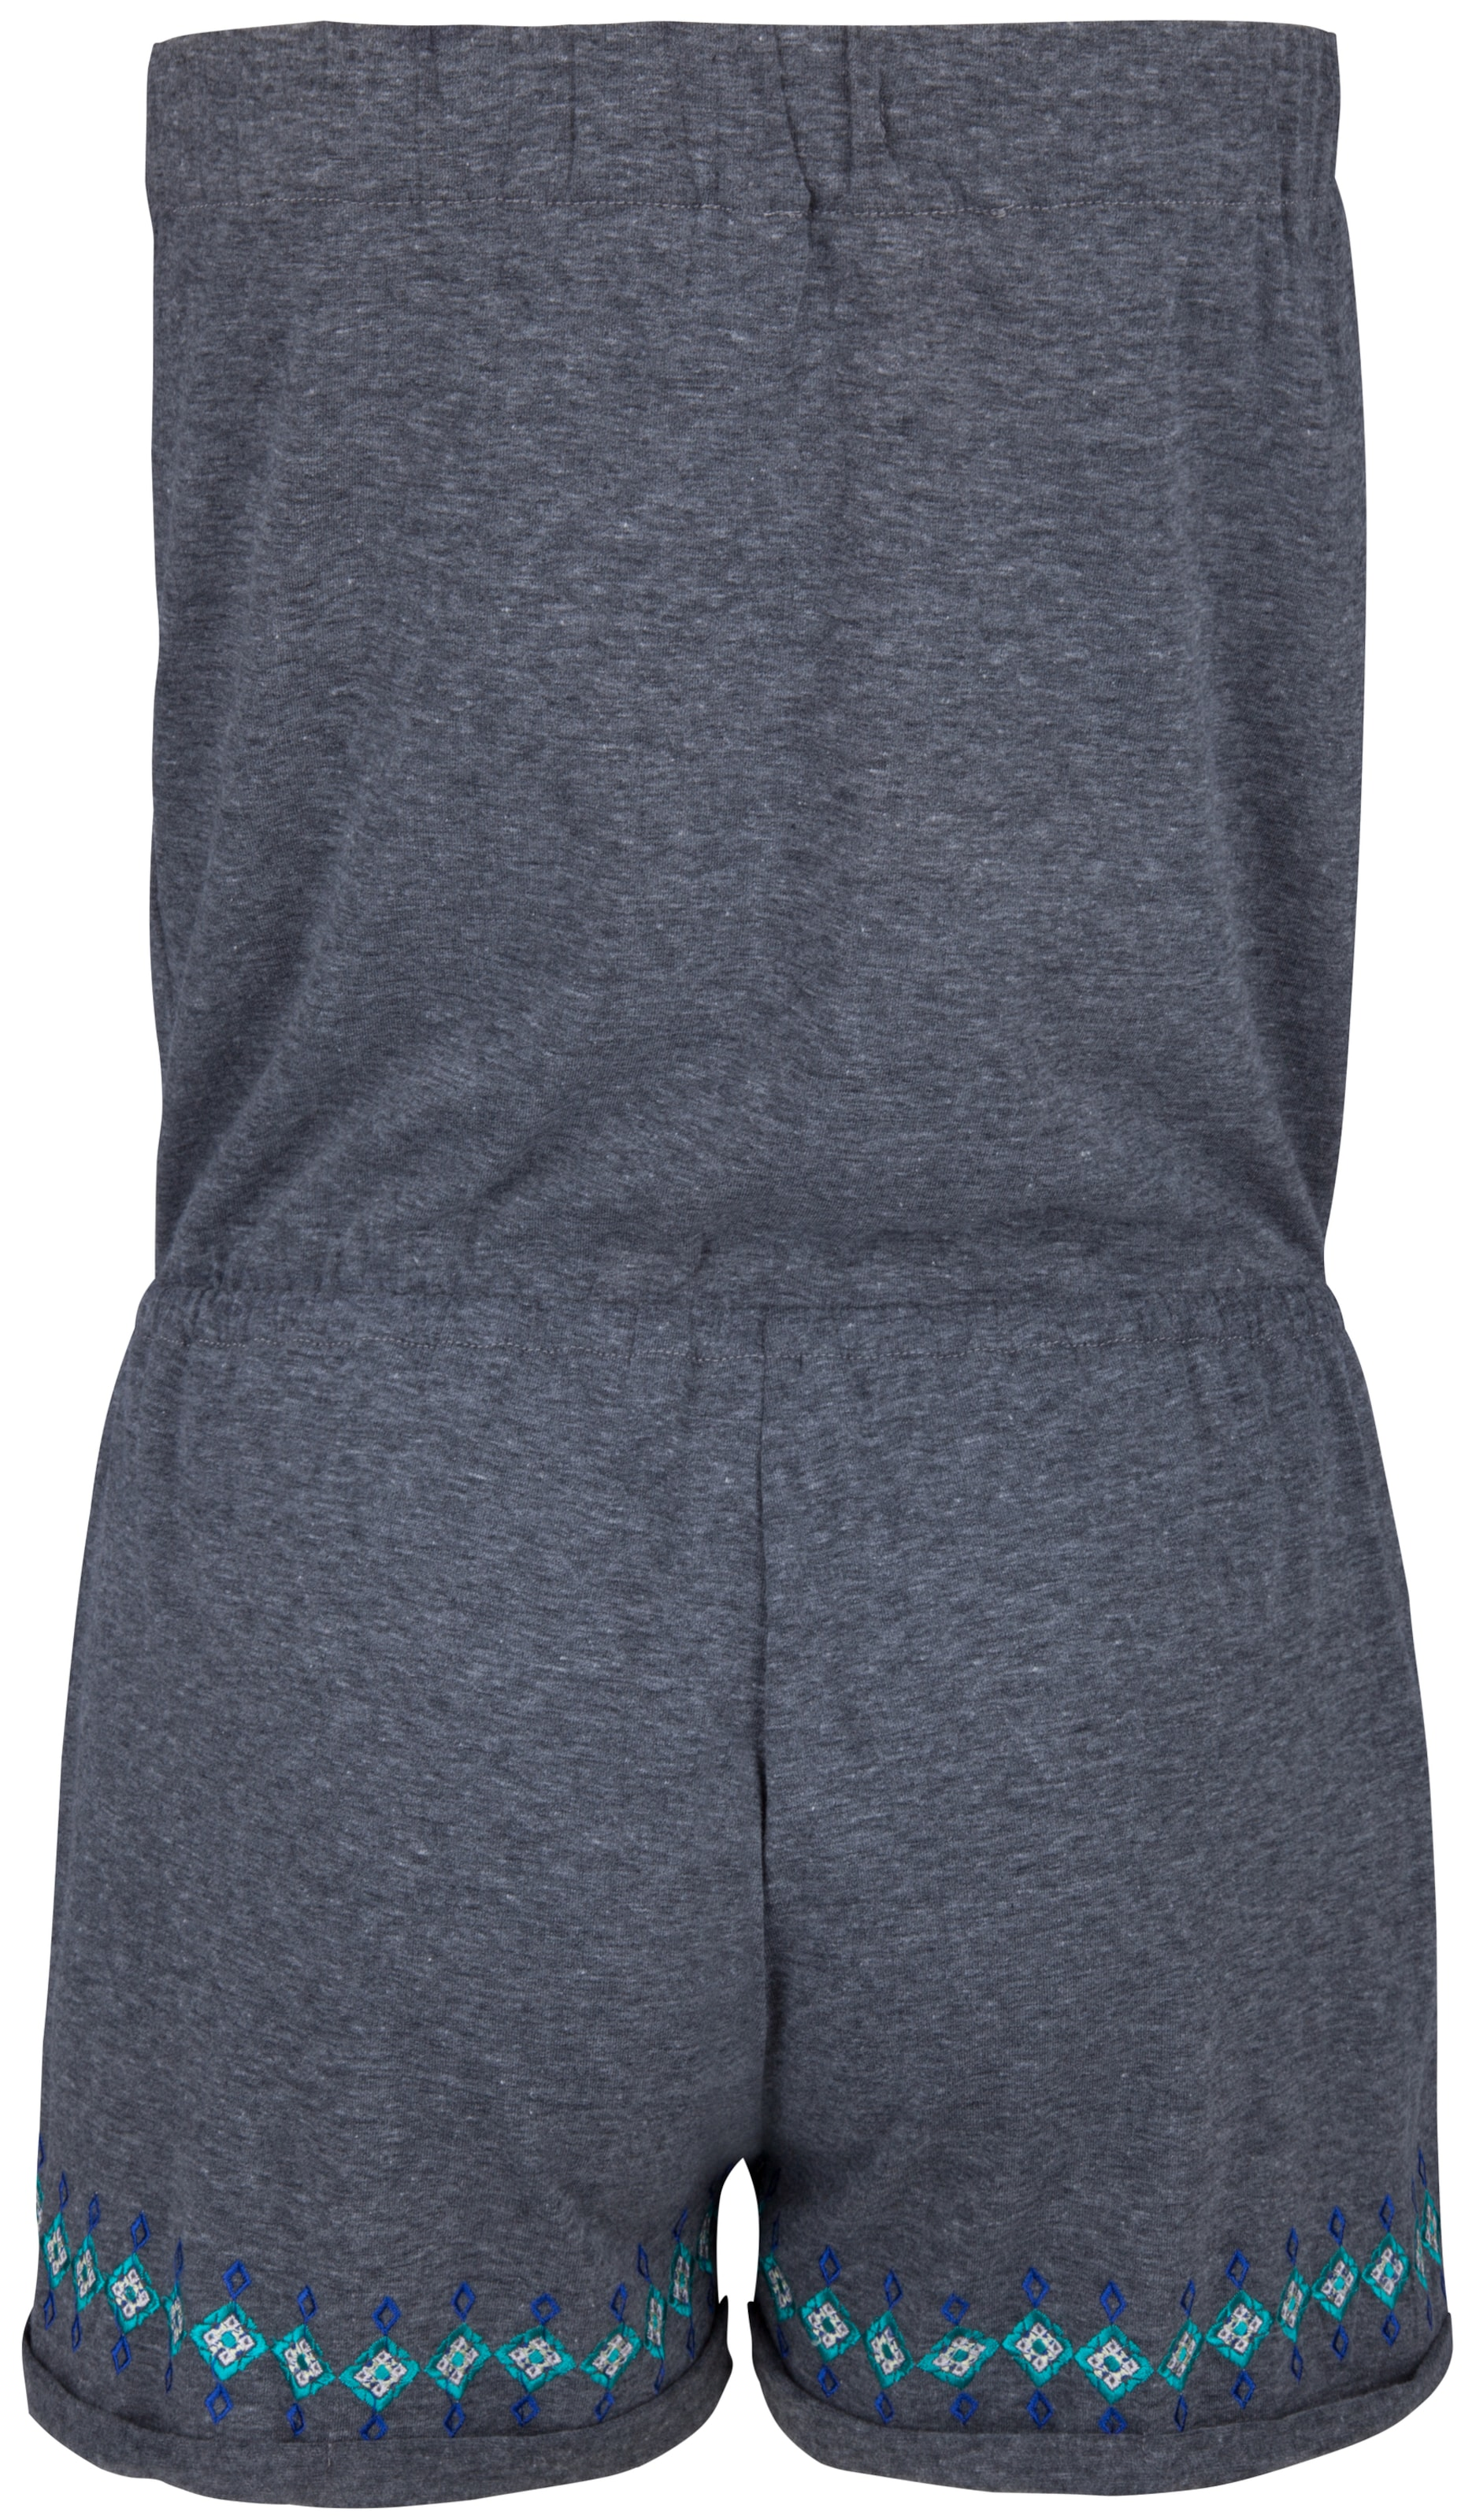 Jumpsuit Jumpsuit In In Mymo Mymo In Graumeliert Graumeliert Graumeliert Mymo Jumpsuit QdtsrxhC